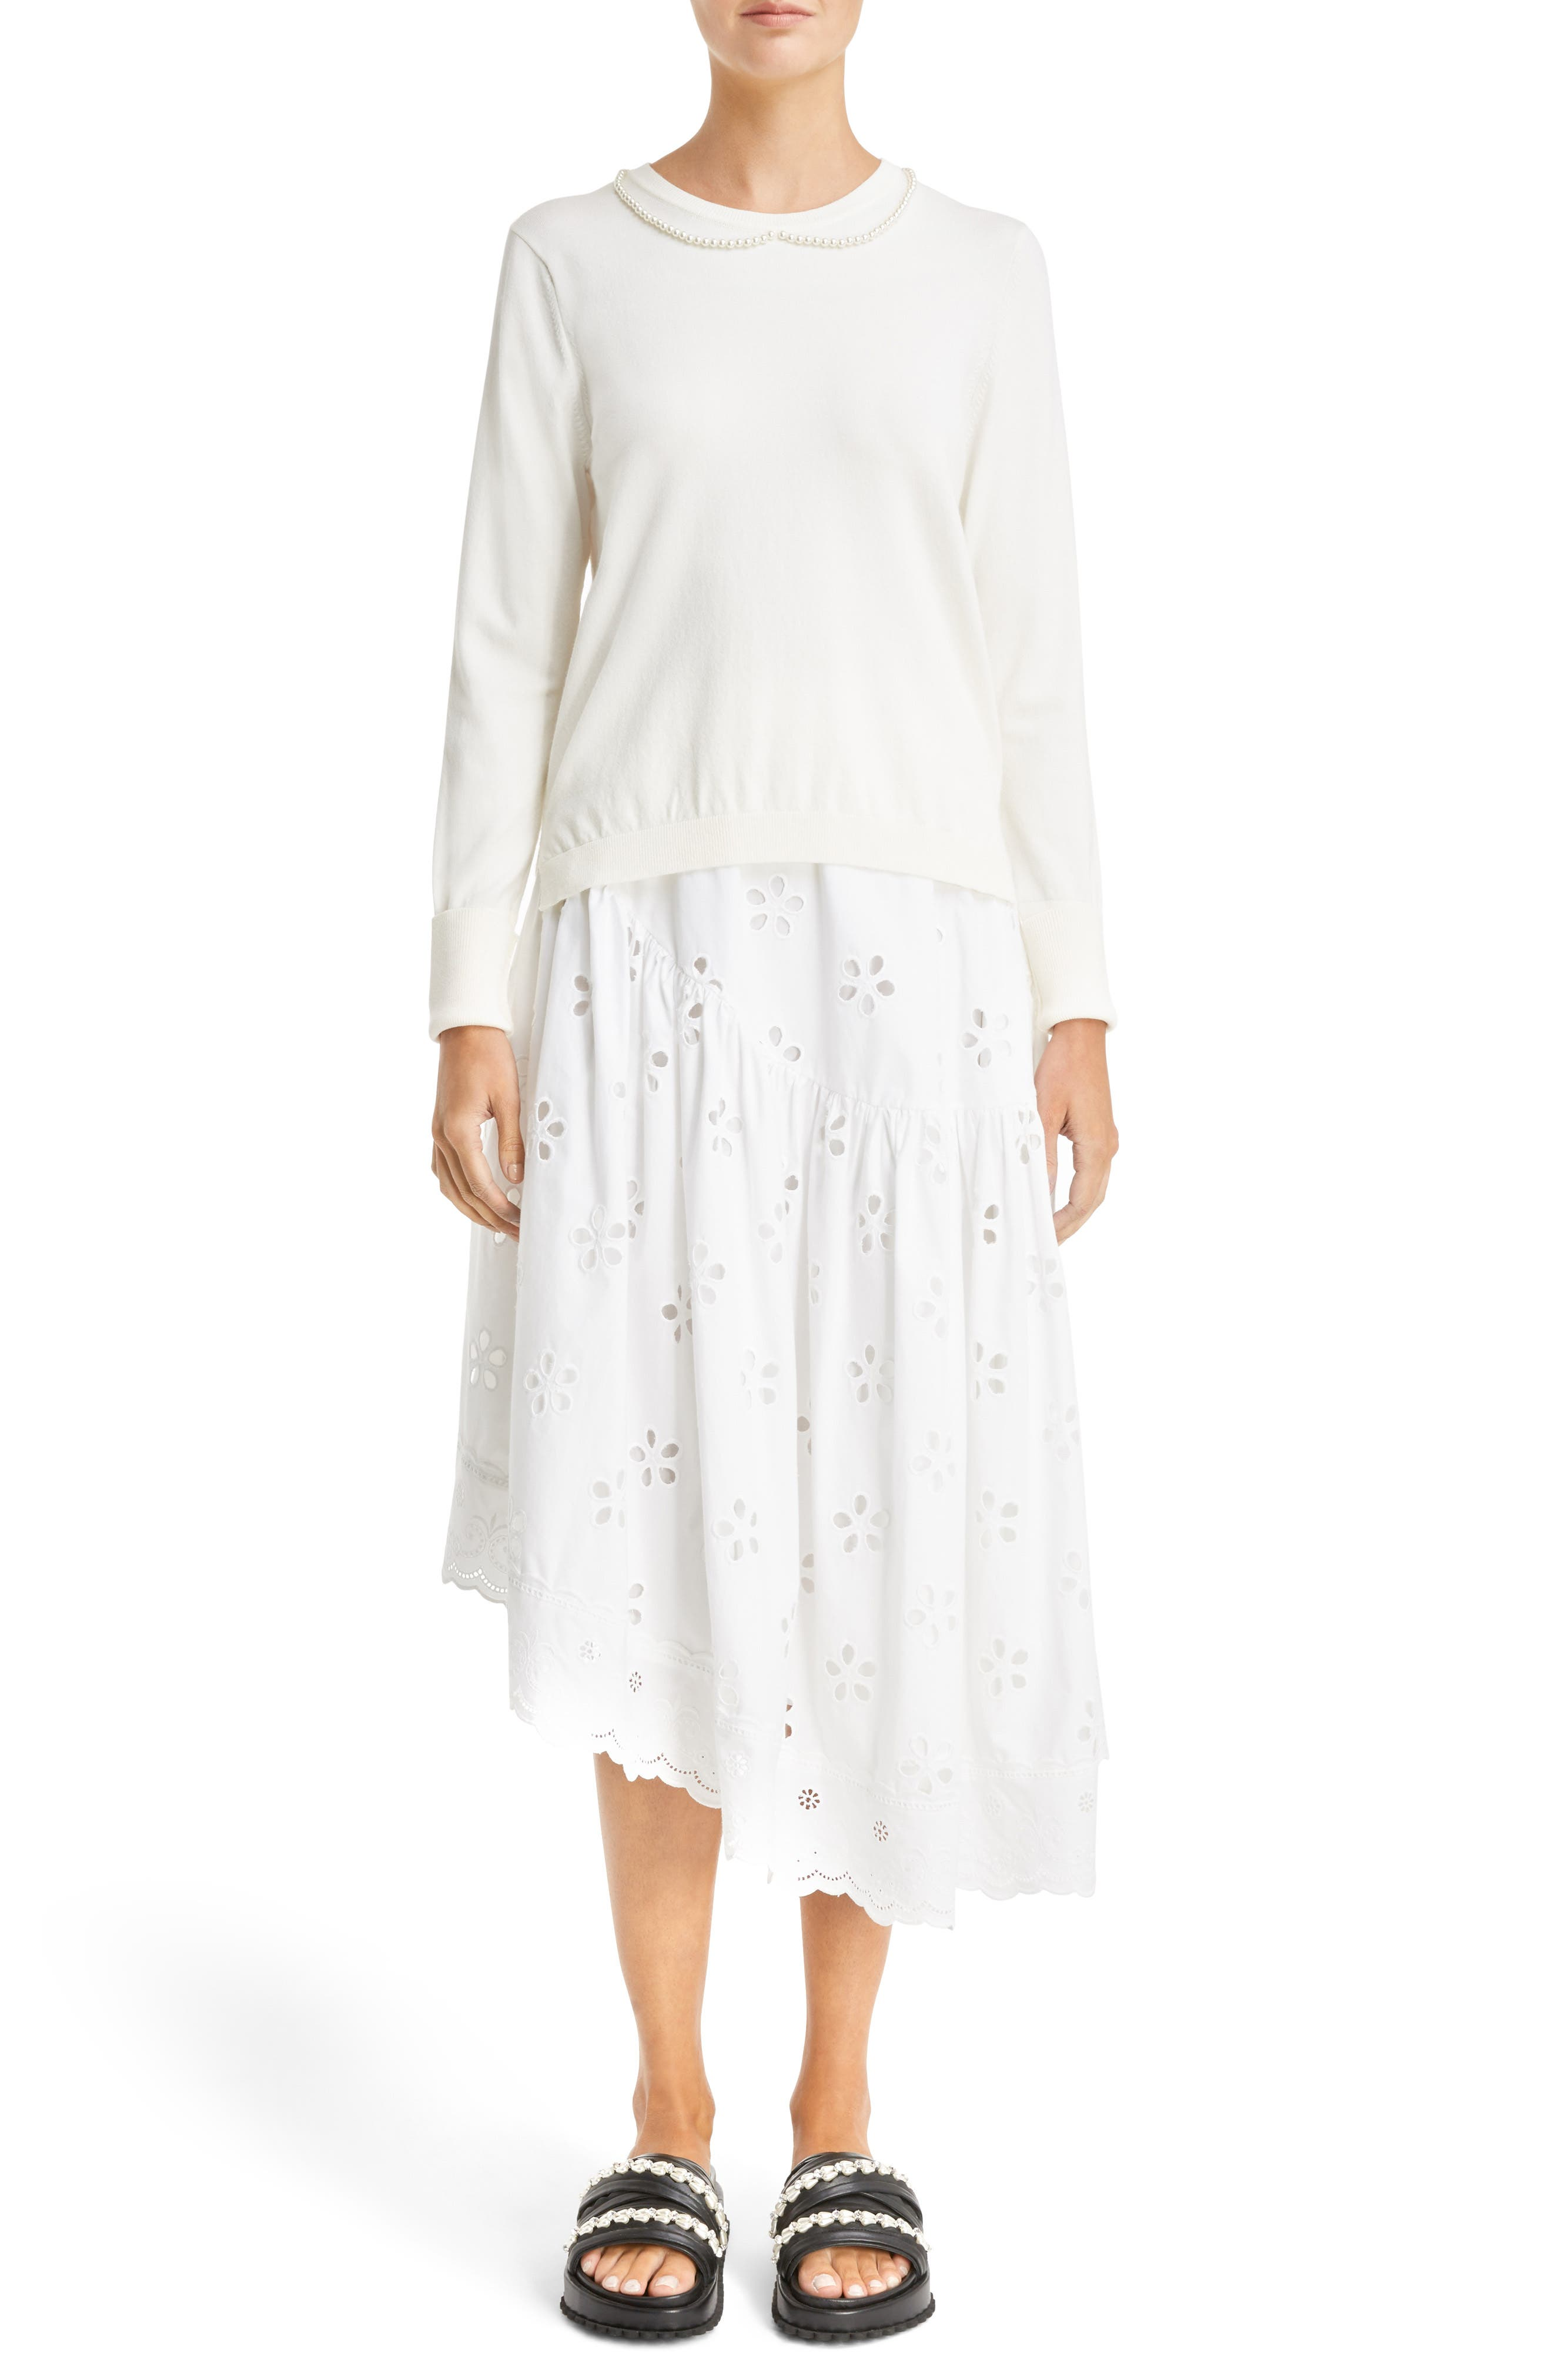 Imitation Pearl Embellished Sweater,                             Alternate thumbnail 4, color,                             Ivory Pearl